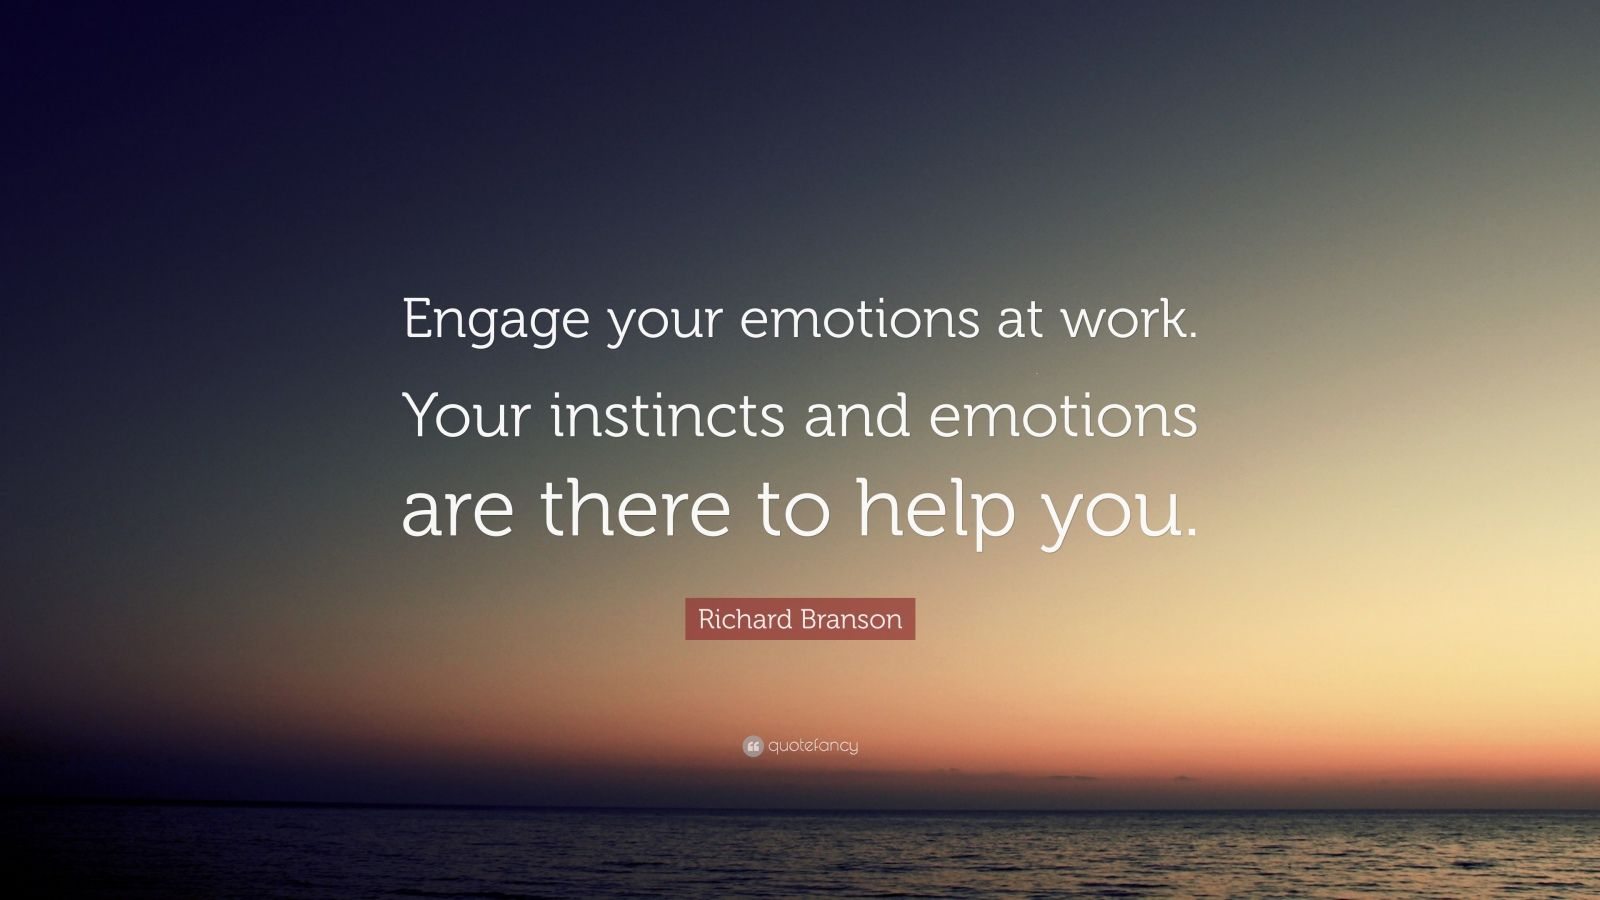 """Richard Branson Quote: """"Engage your emotions at work. Your instincts and emotions are there to help you."""""""